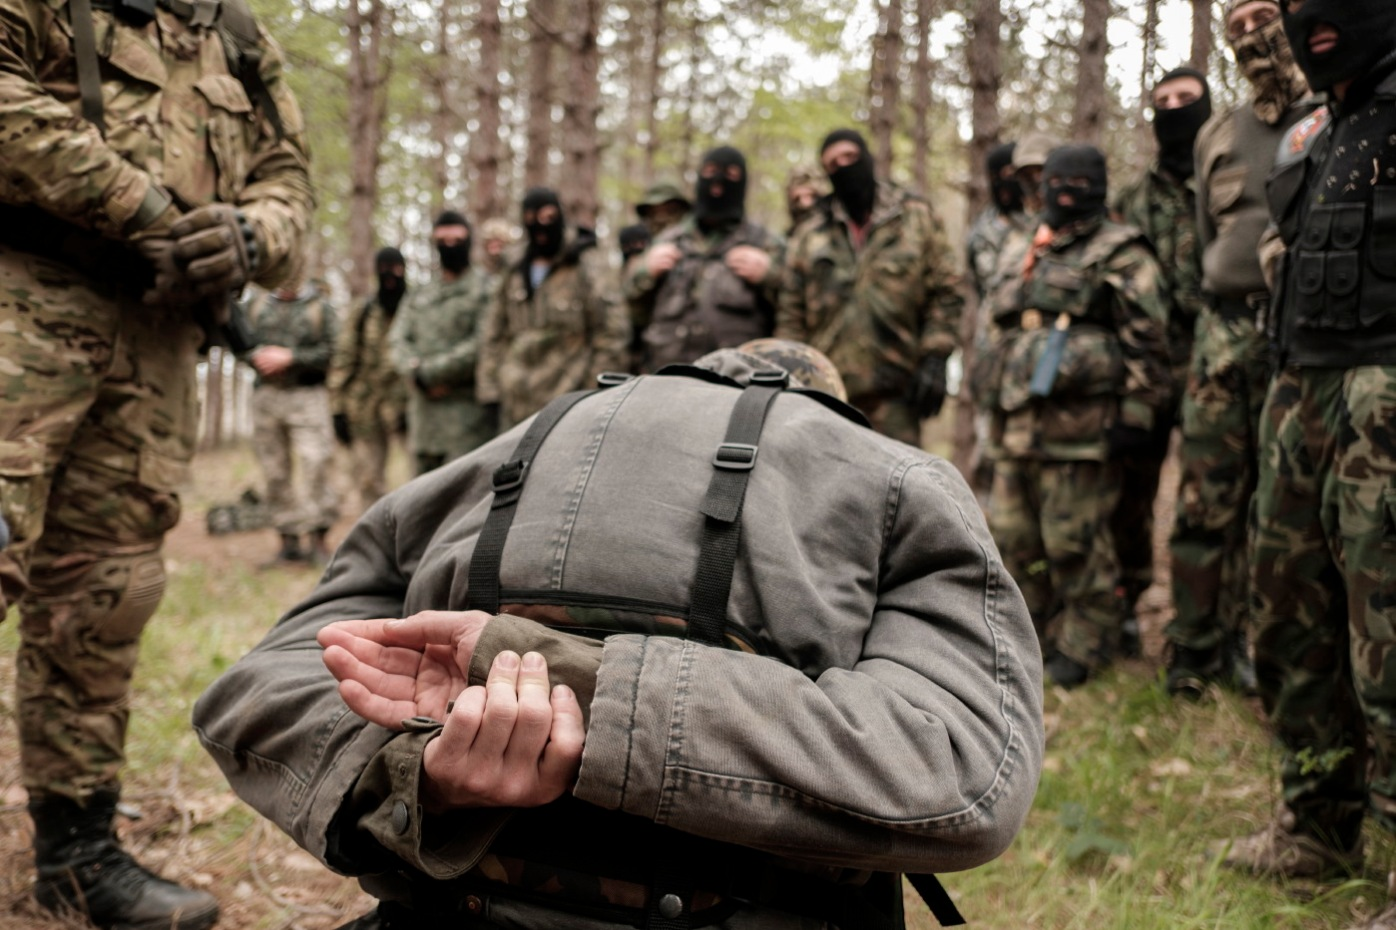 """A volunteer from the """"Vasil Levski"""" Bulgarian Military Veterans Union is seen kneeling during a drill in which the simulation of the capture of a man was carried out in the forest near Nestinarka camp-site. Tsarevo, Bulgaria 2017. © Matteo Bastianelli"""